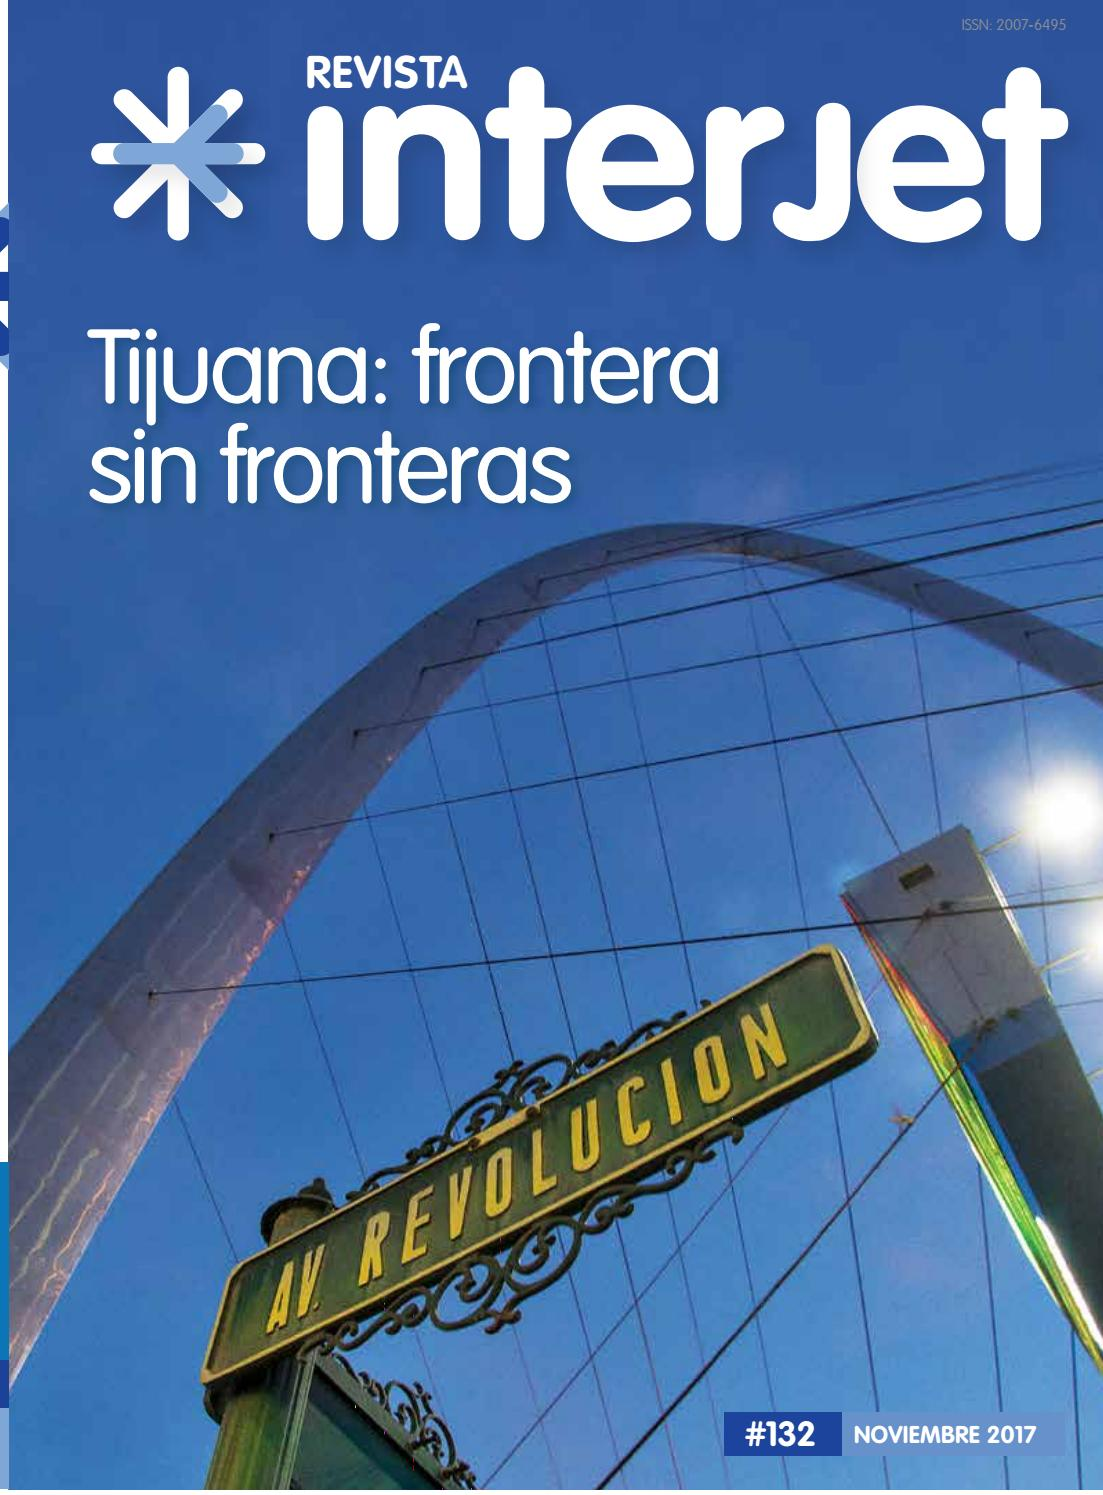 610c84d463b4 Revista Interjet Noviembre 2017 by Interjet - issuu